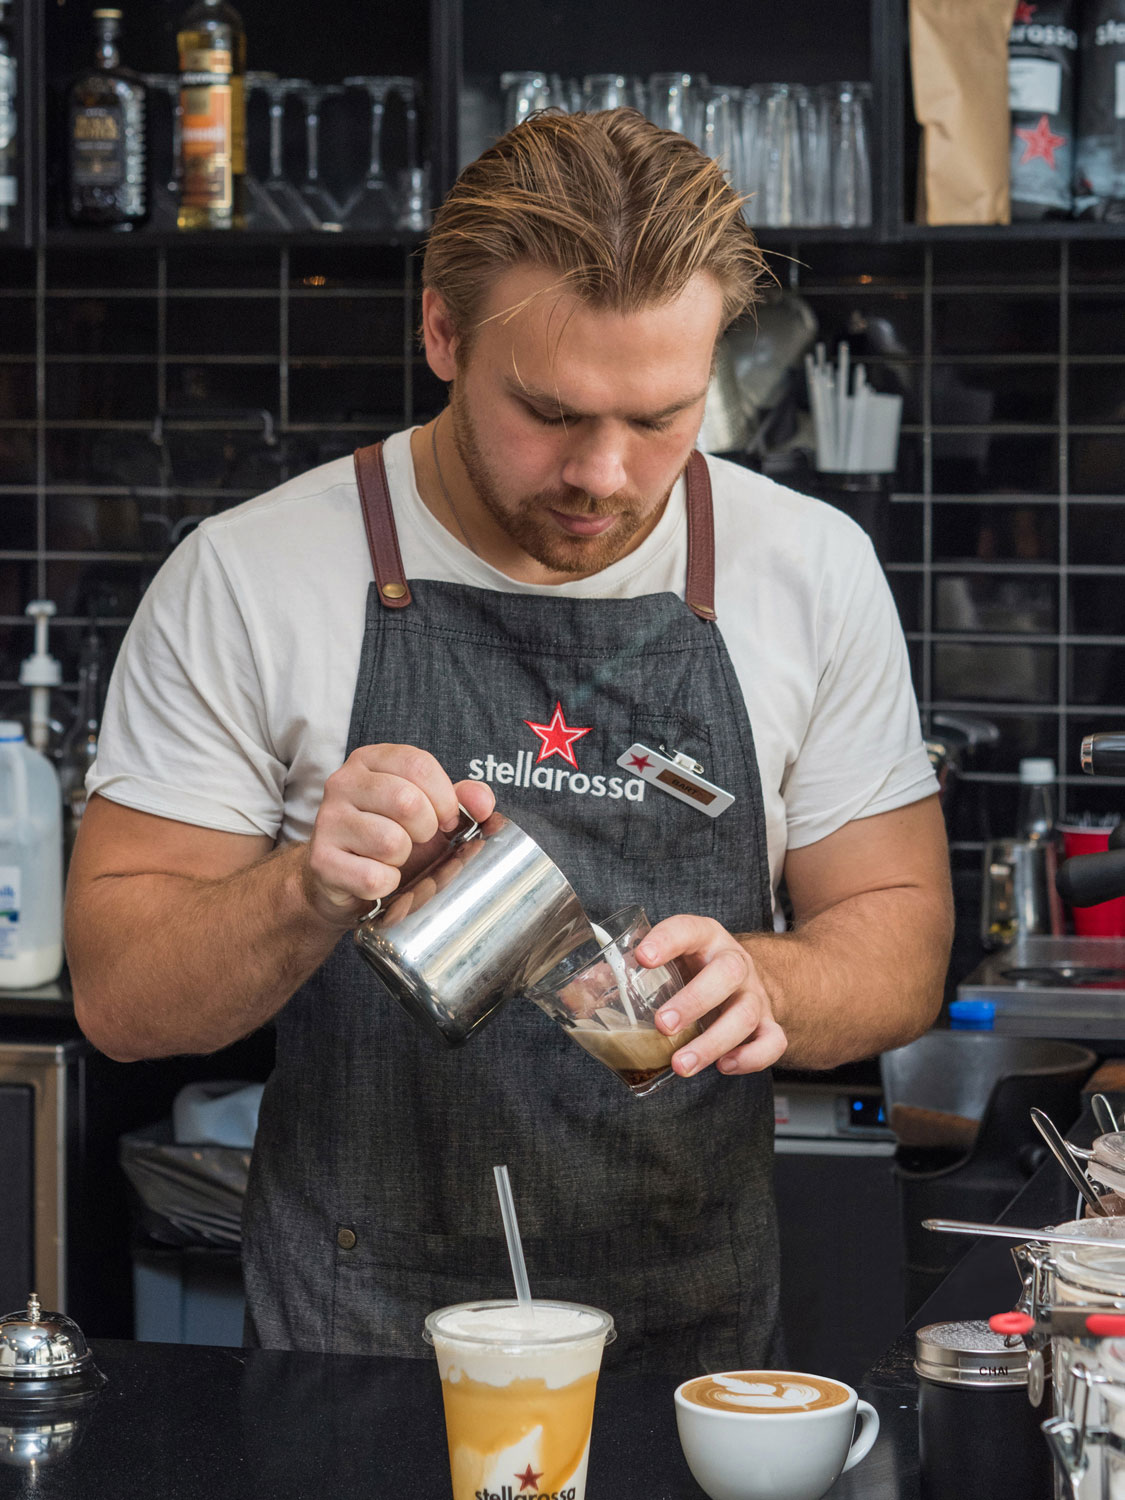 Pouring the coffee - Commercial photography shoot for Stellarossa Coffee